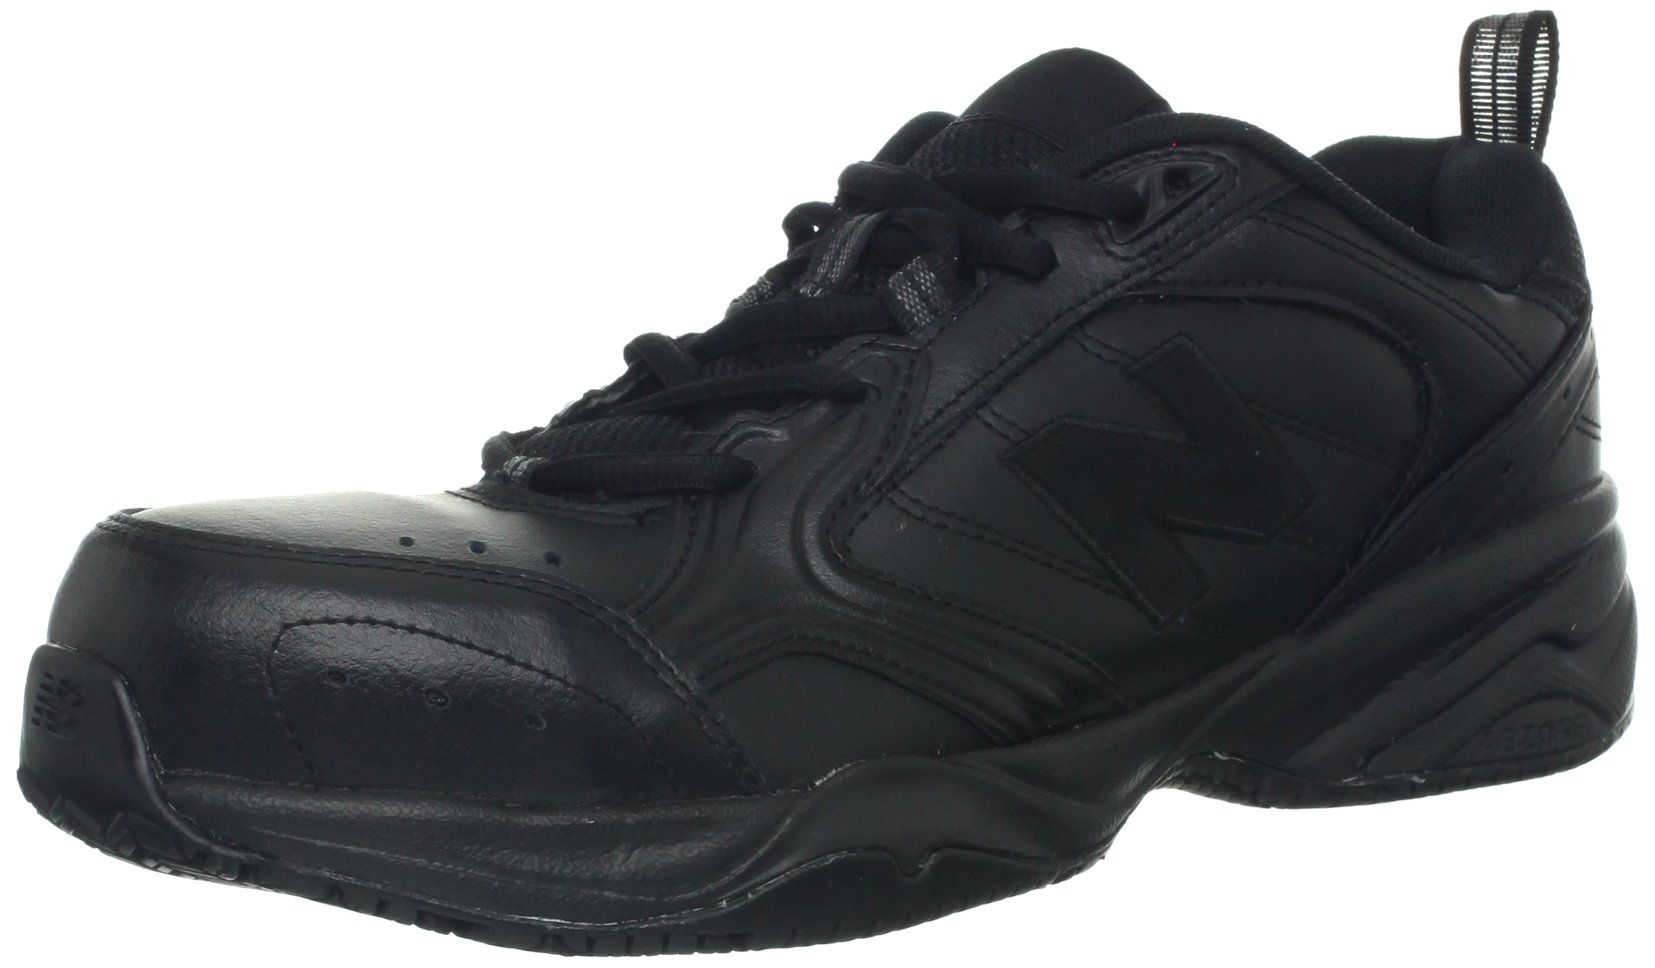 New Balance Men's MID627 Steel-Toe Work Shoe,Black,10 2E US by New Balance